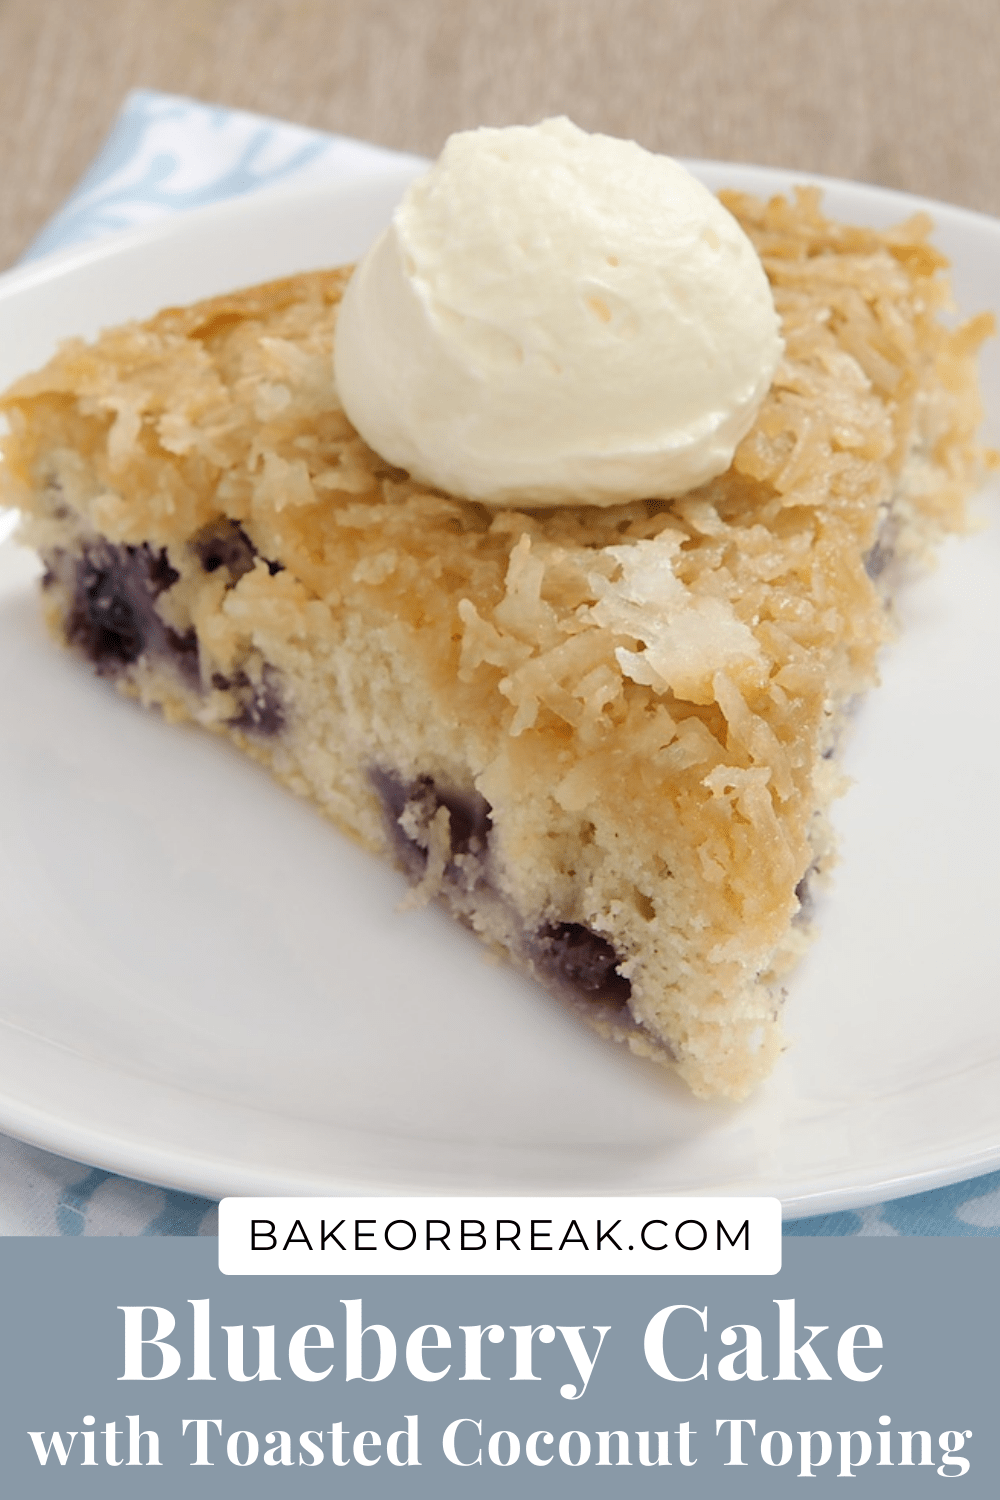 Blueberry Cake with Toasted Coconut Topping bakeorbreak.com